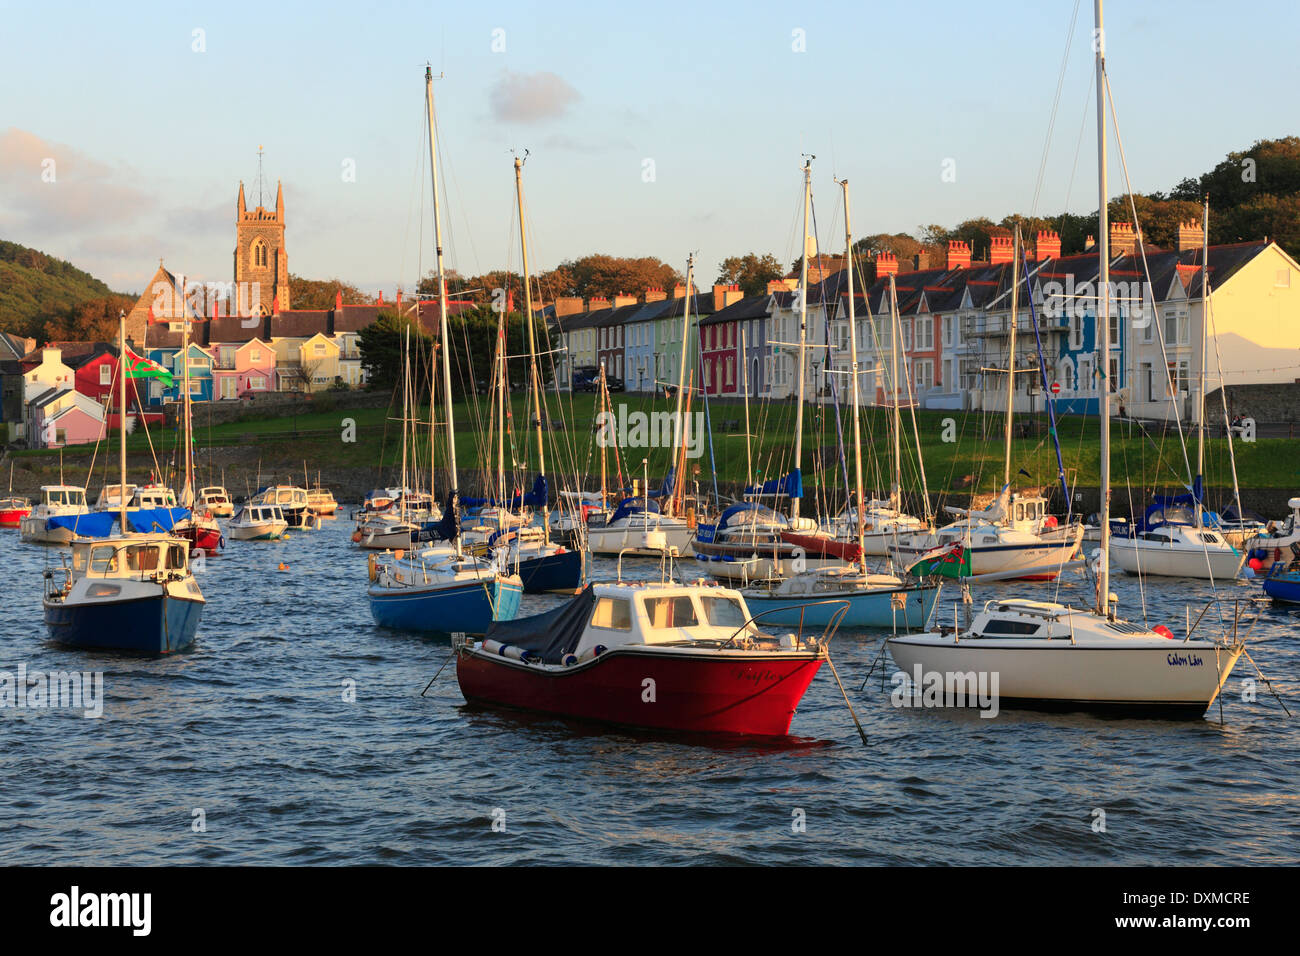 Boats in the harbour at Aberaeron, Ceredigion, Wales, UK. - Stock Image